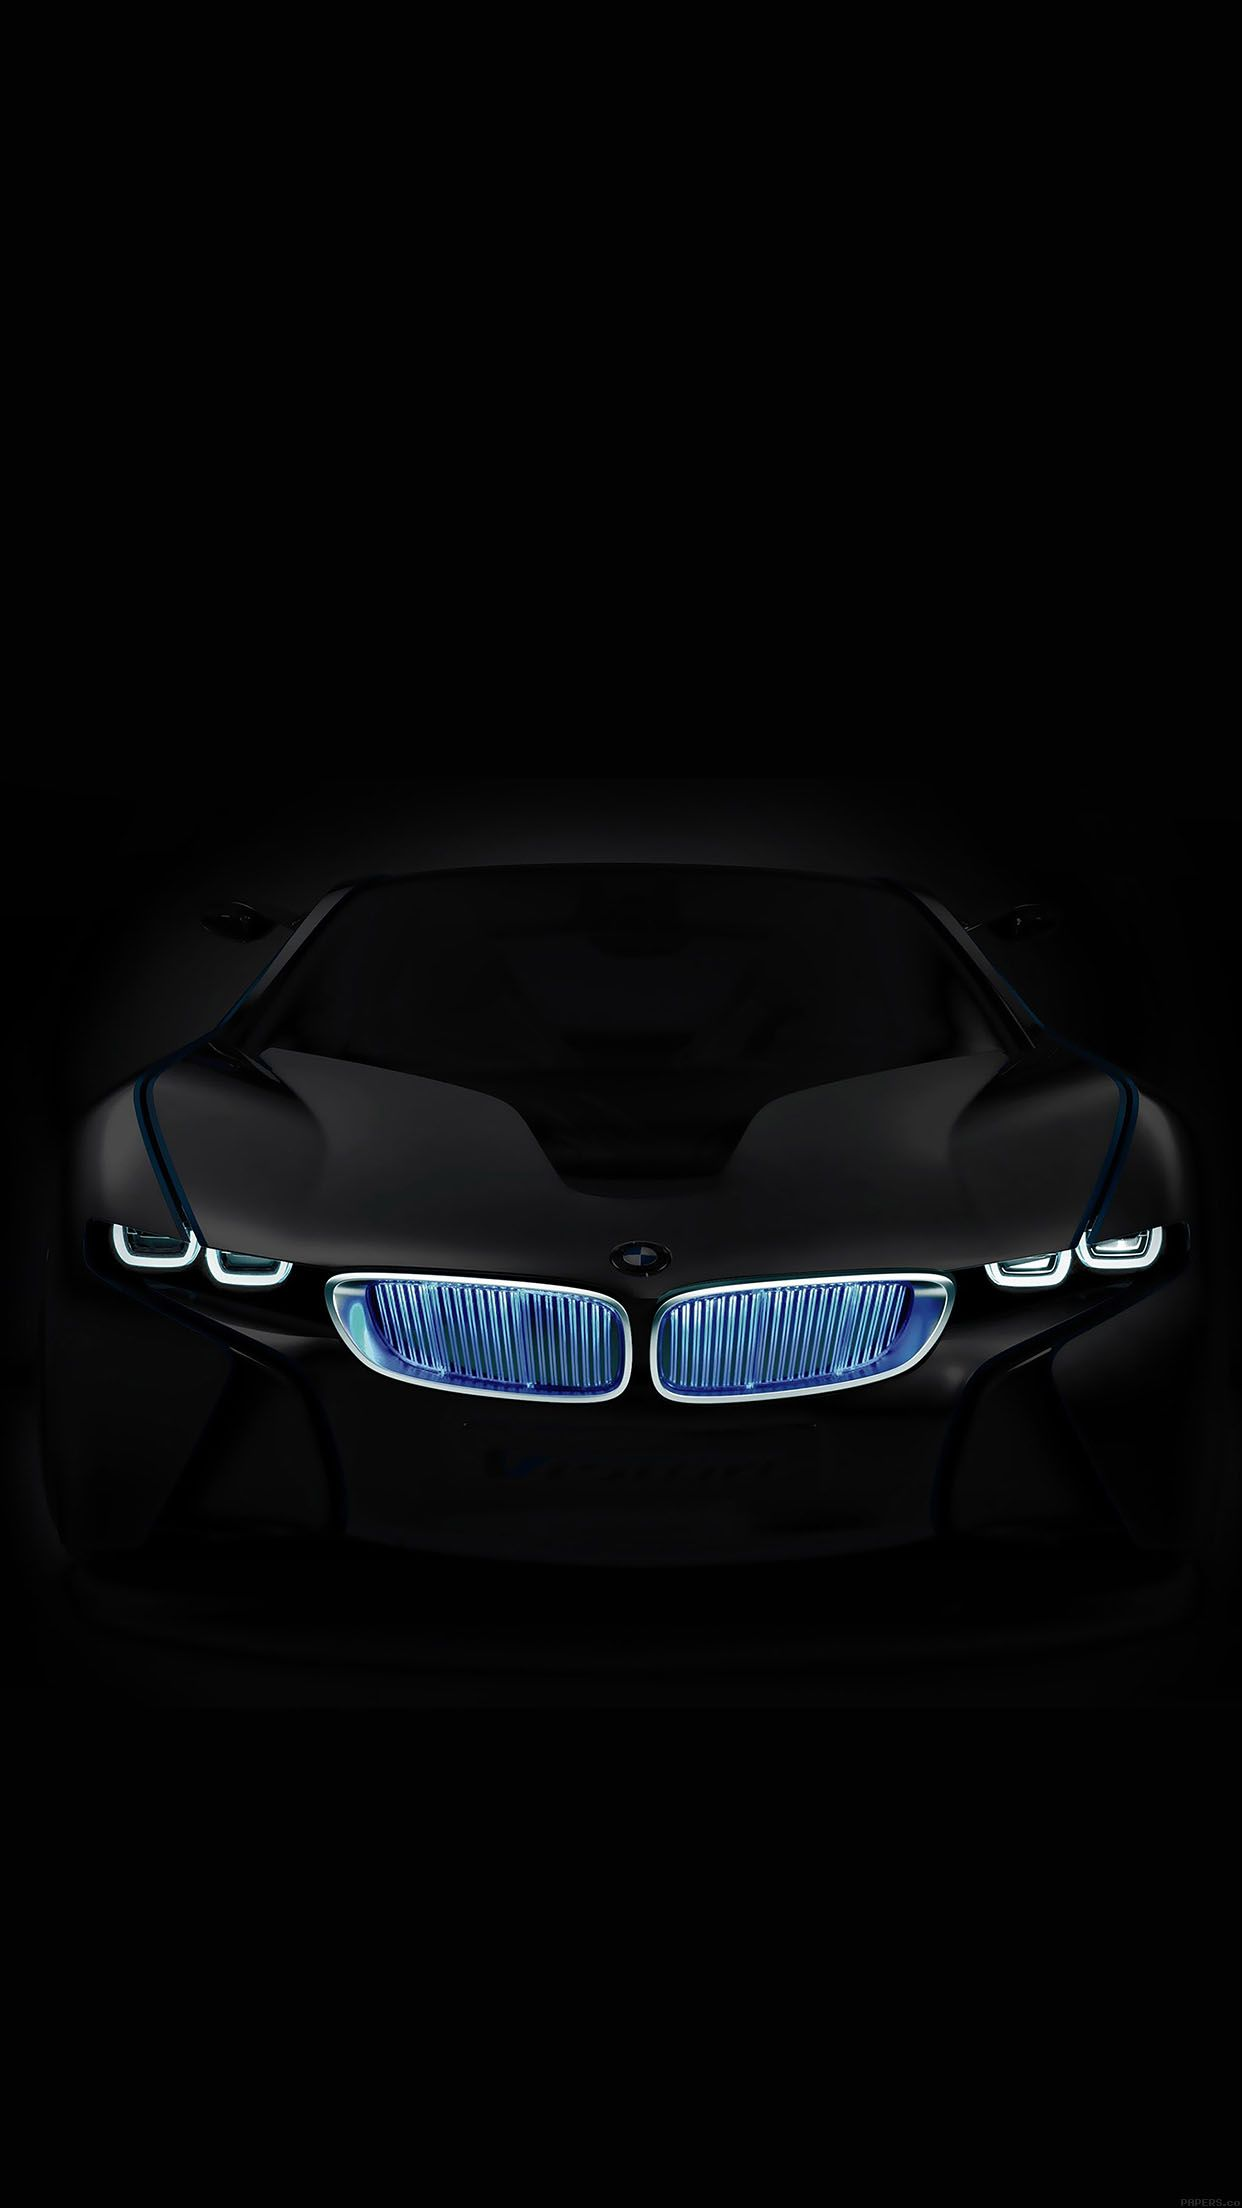 Bmw logo iphone wallpaper image 23